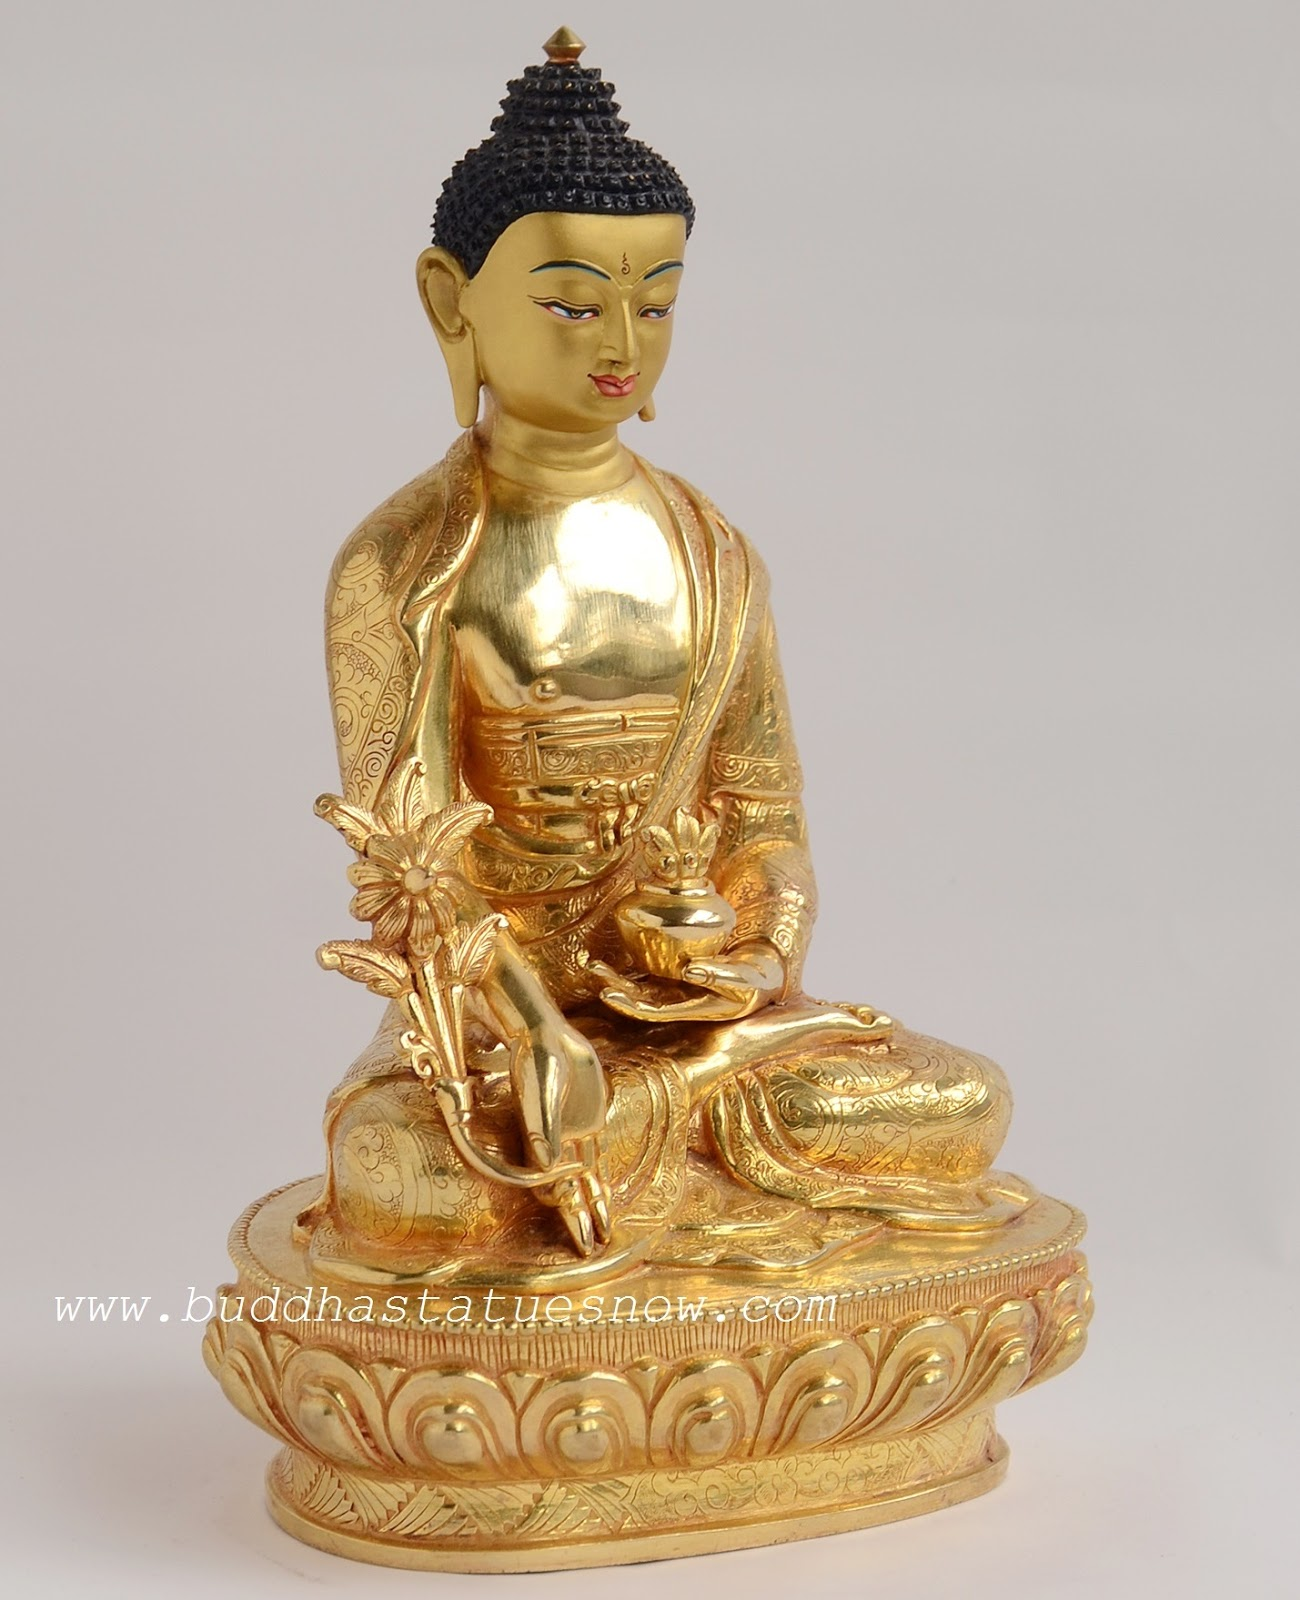 Buddha Statues & Feng Shui The Feng Shui philosophy is based on living in  harmony with nature. As a result, there are common sense elements that will  make ...